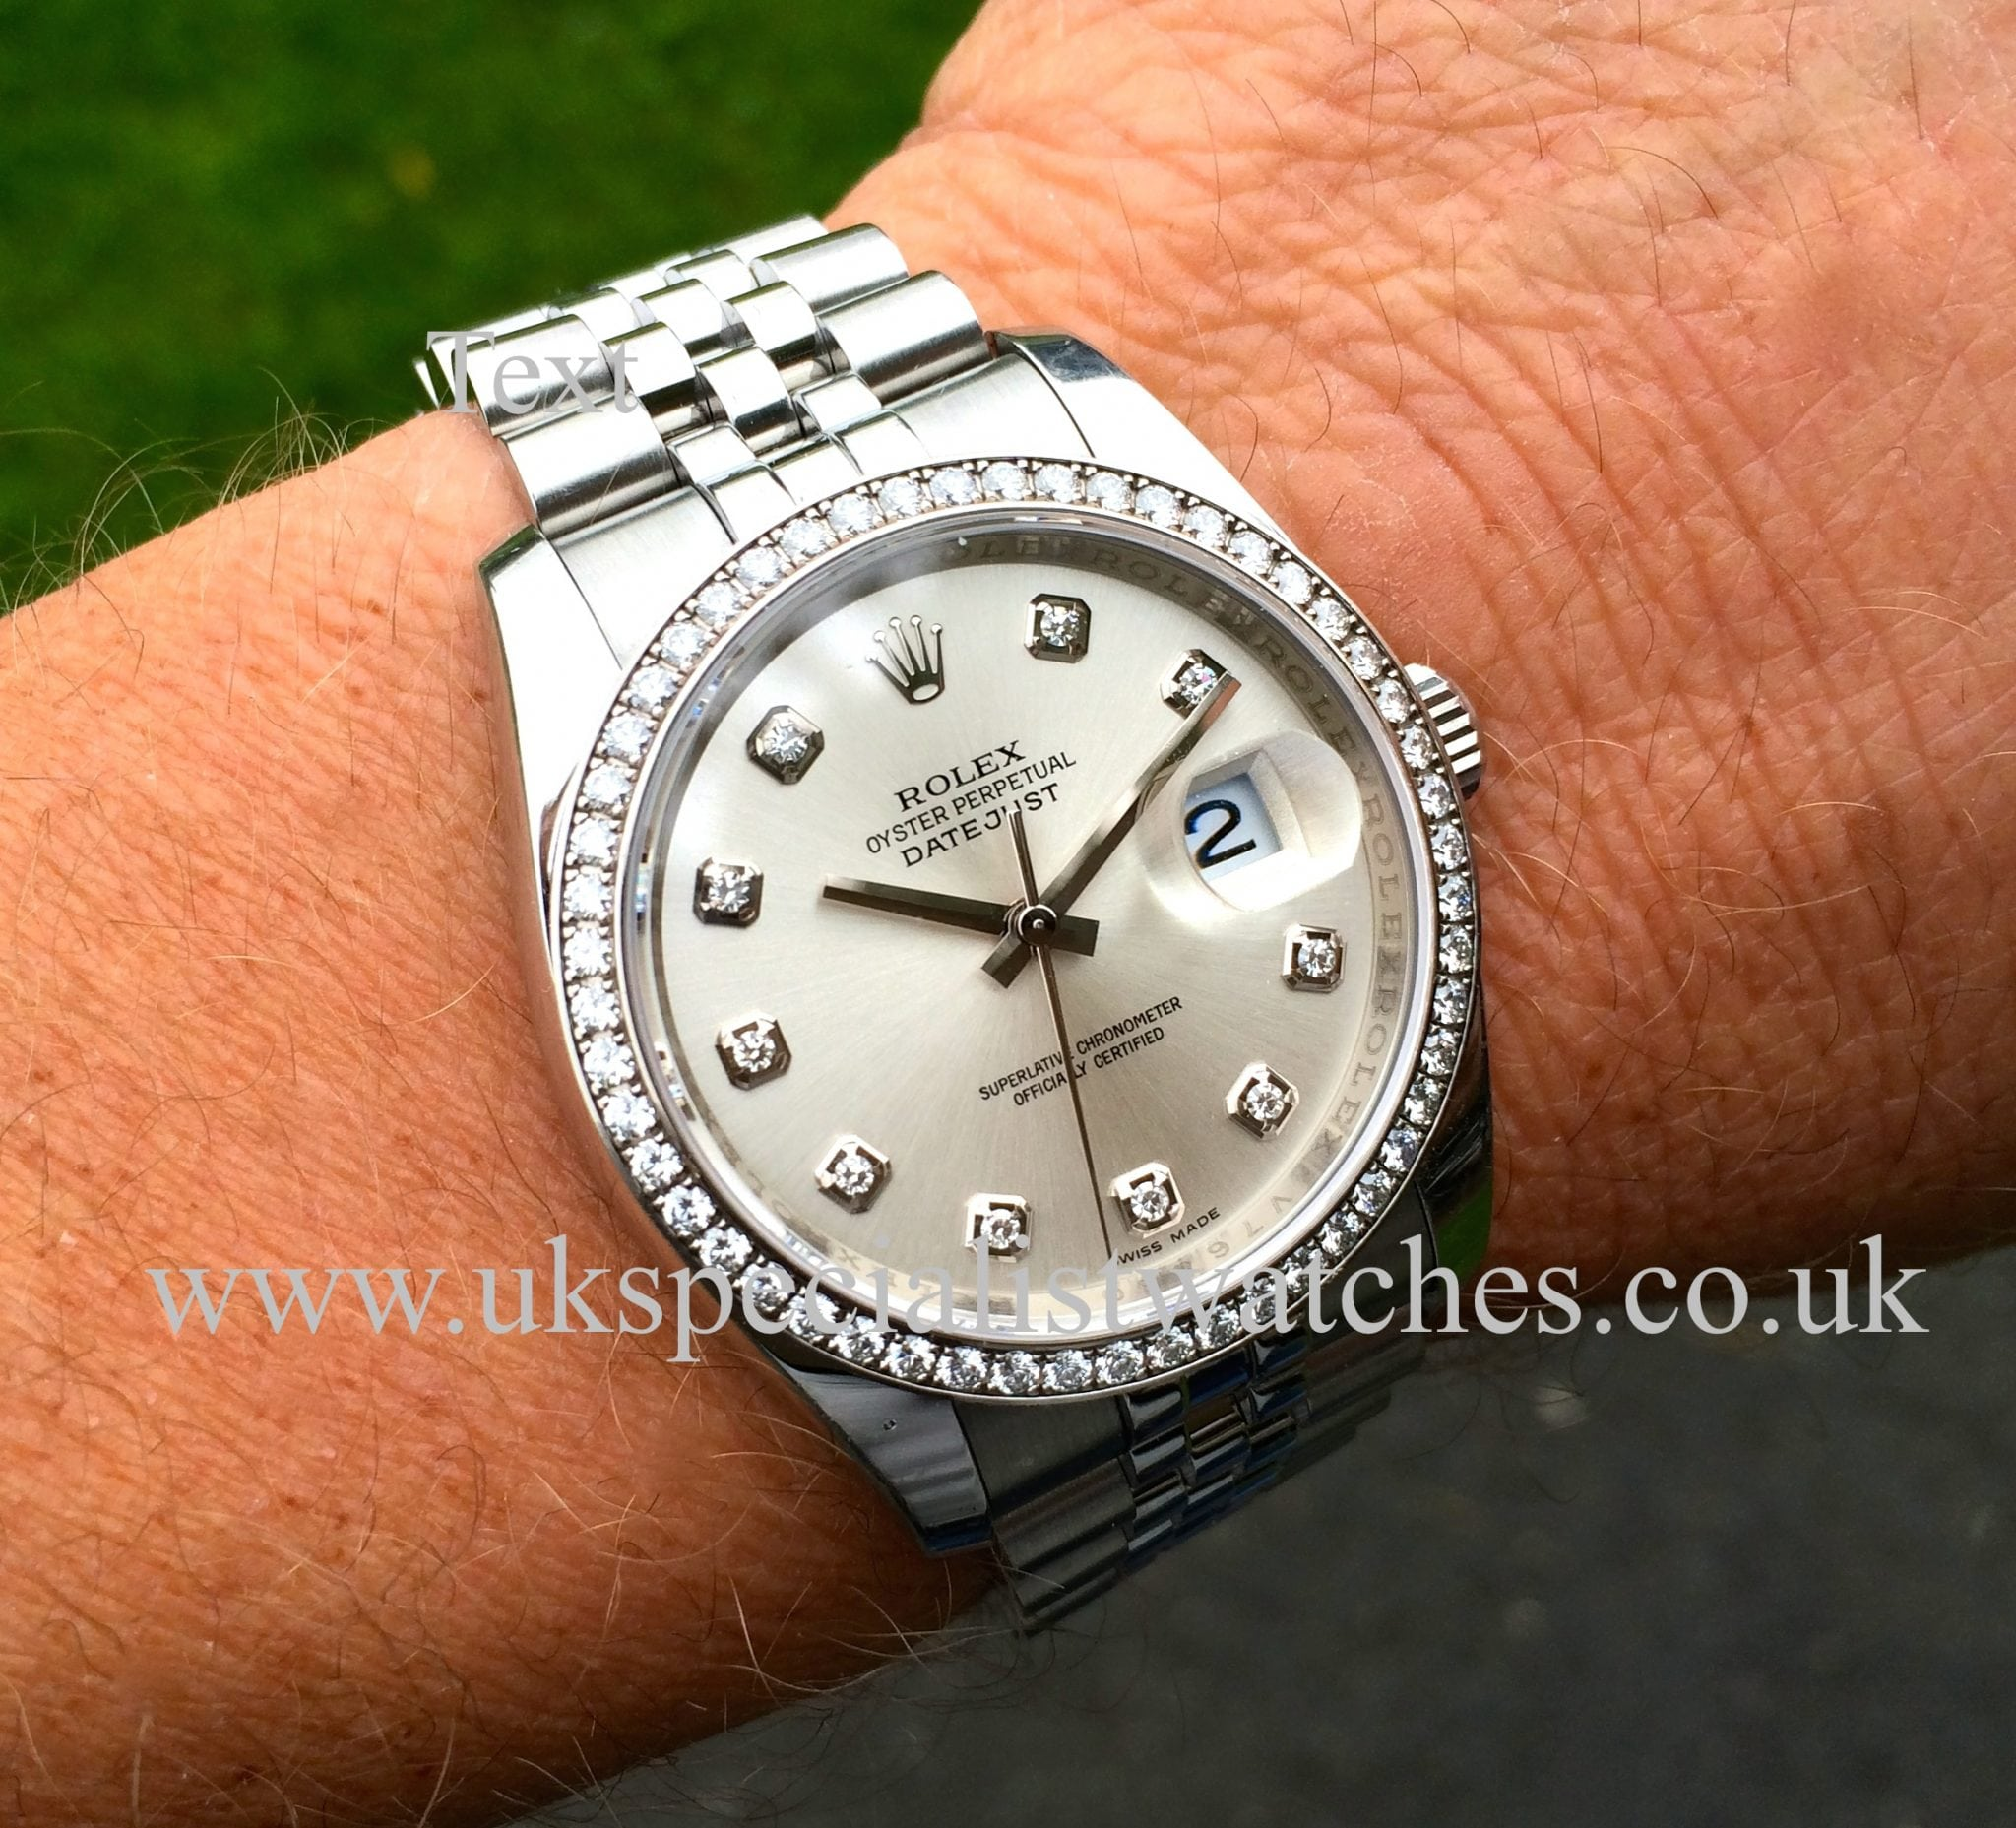 Rolex datejust 36mm diamond bezel diamond dial 116244 uk specialist watches for Diamond dial watch